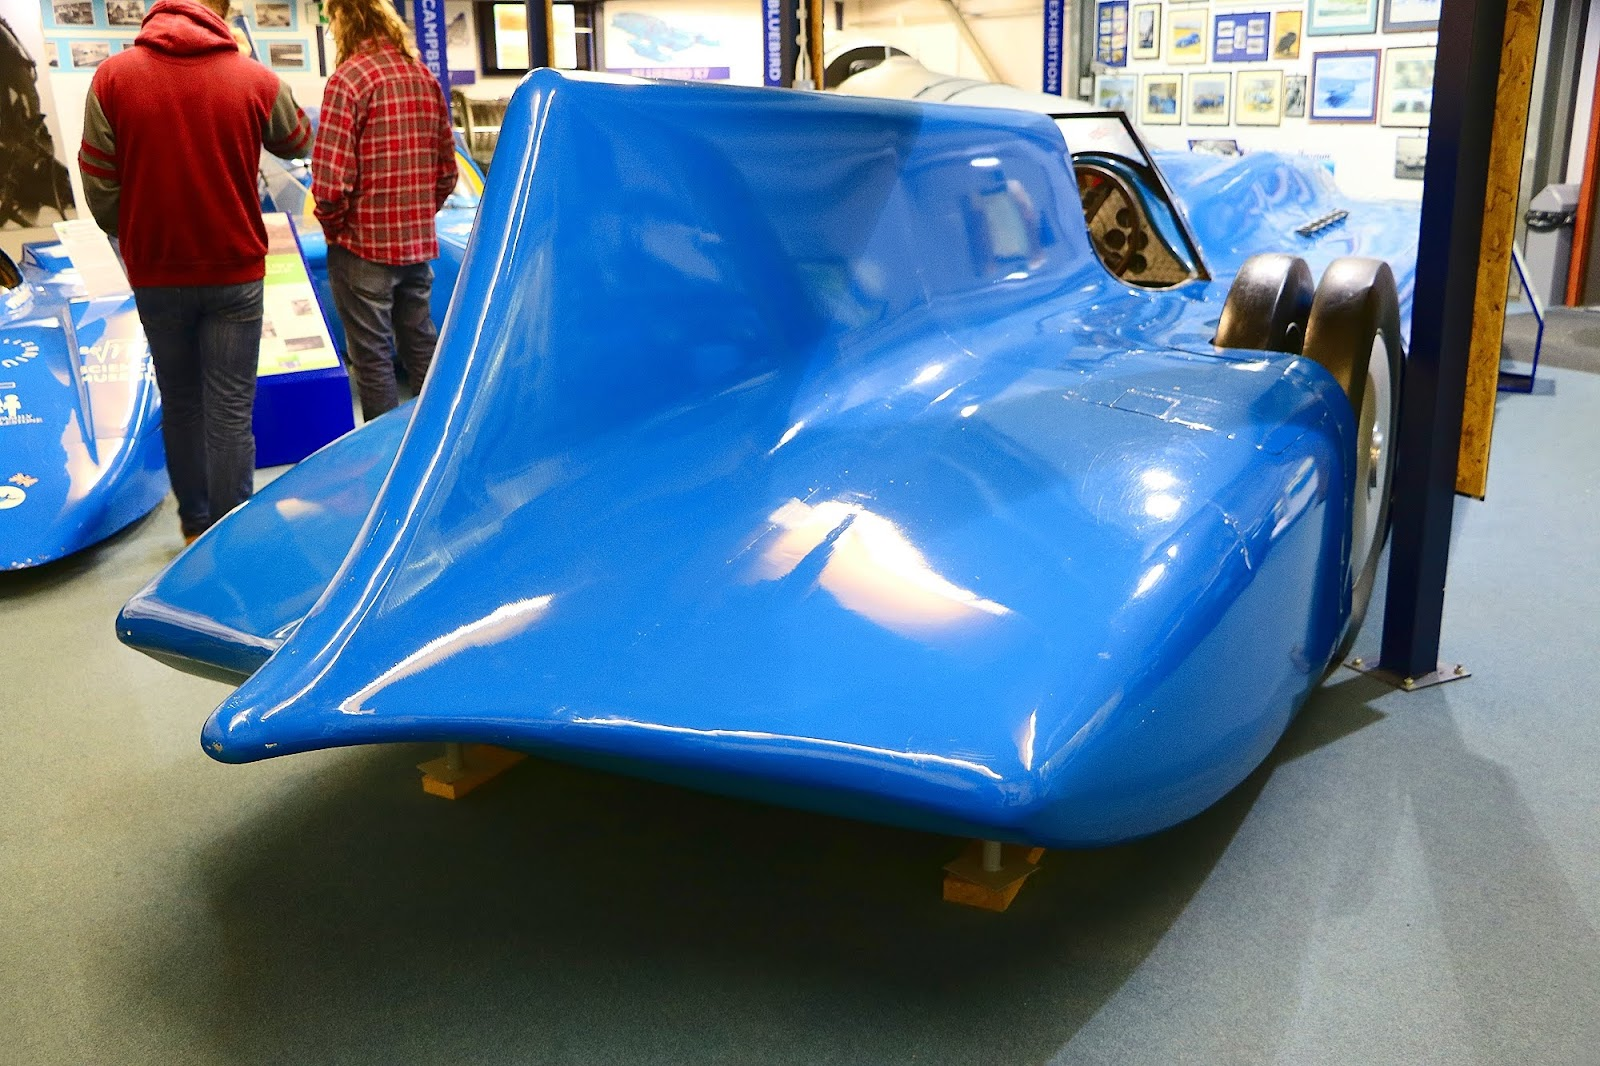 Sir Malcolm Campbells 1935 Bluebird Car Rear.jpg